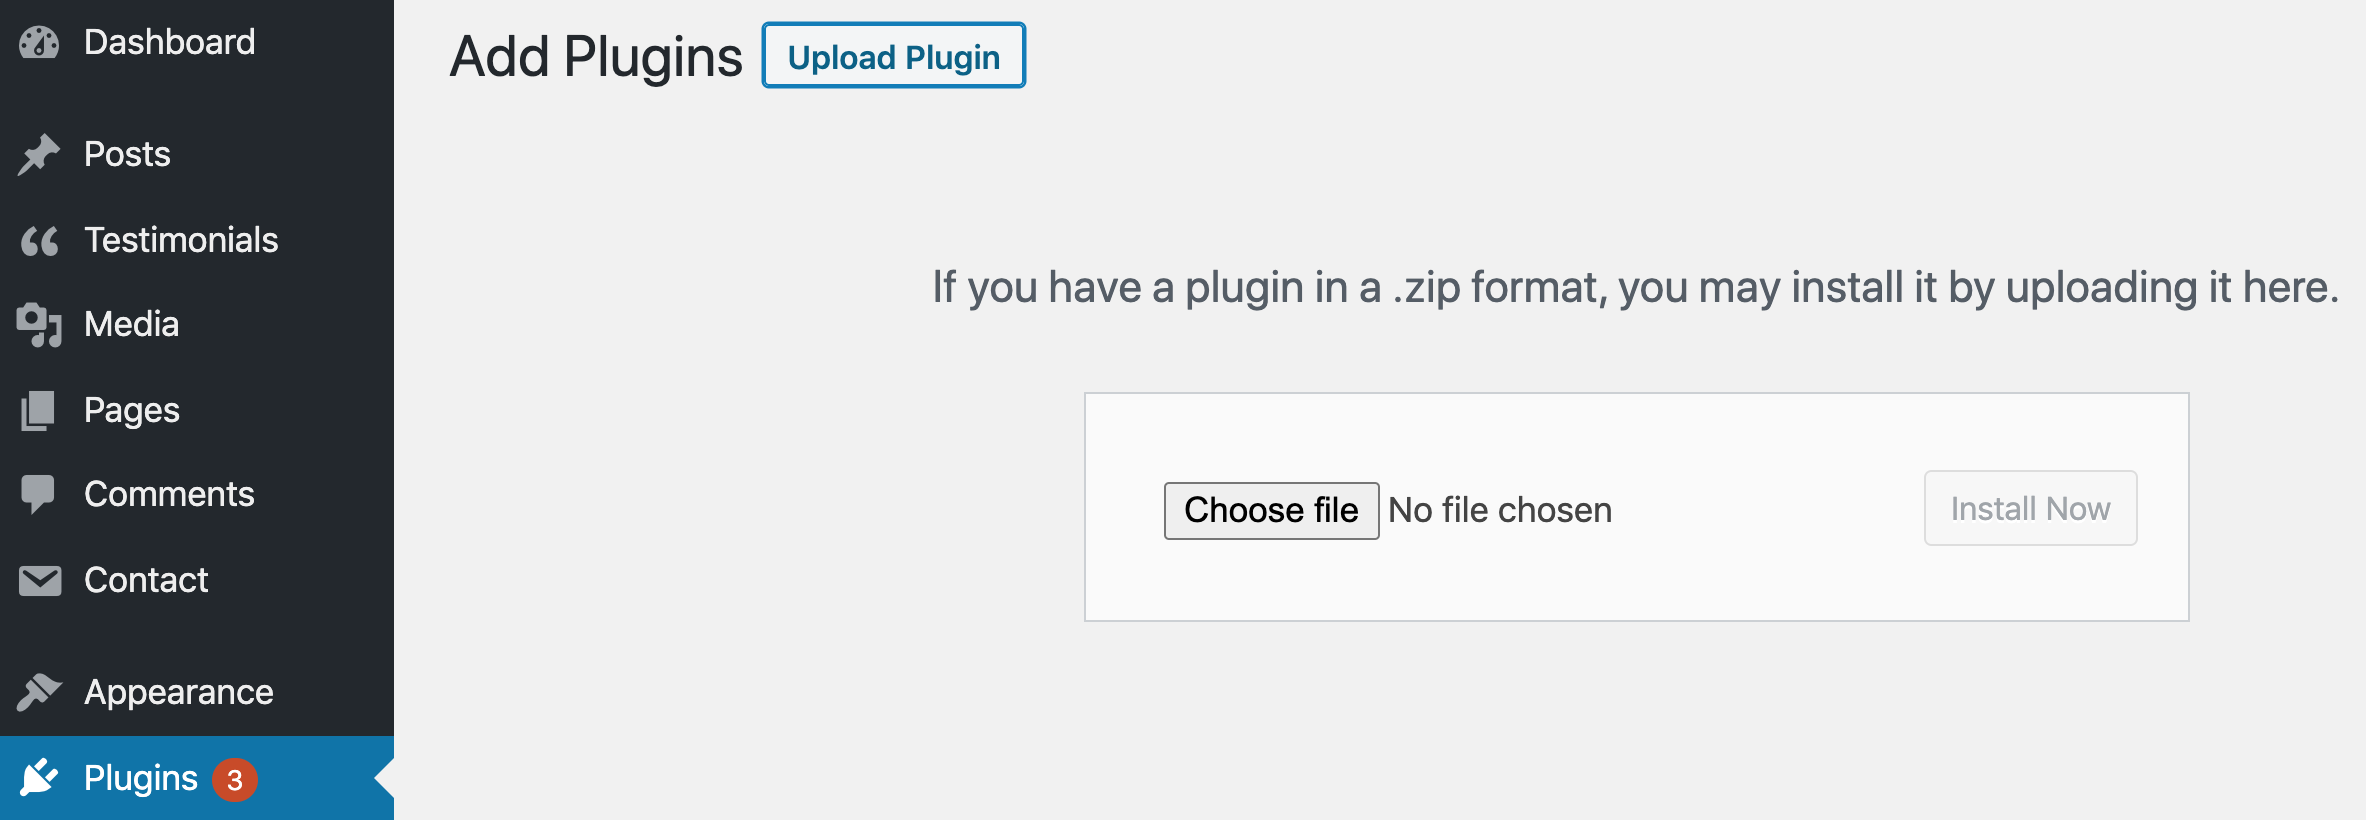 wordpress admin area add plugins section